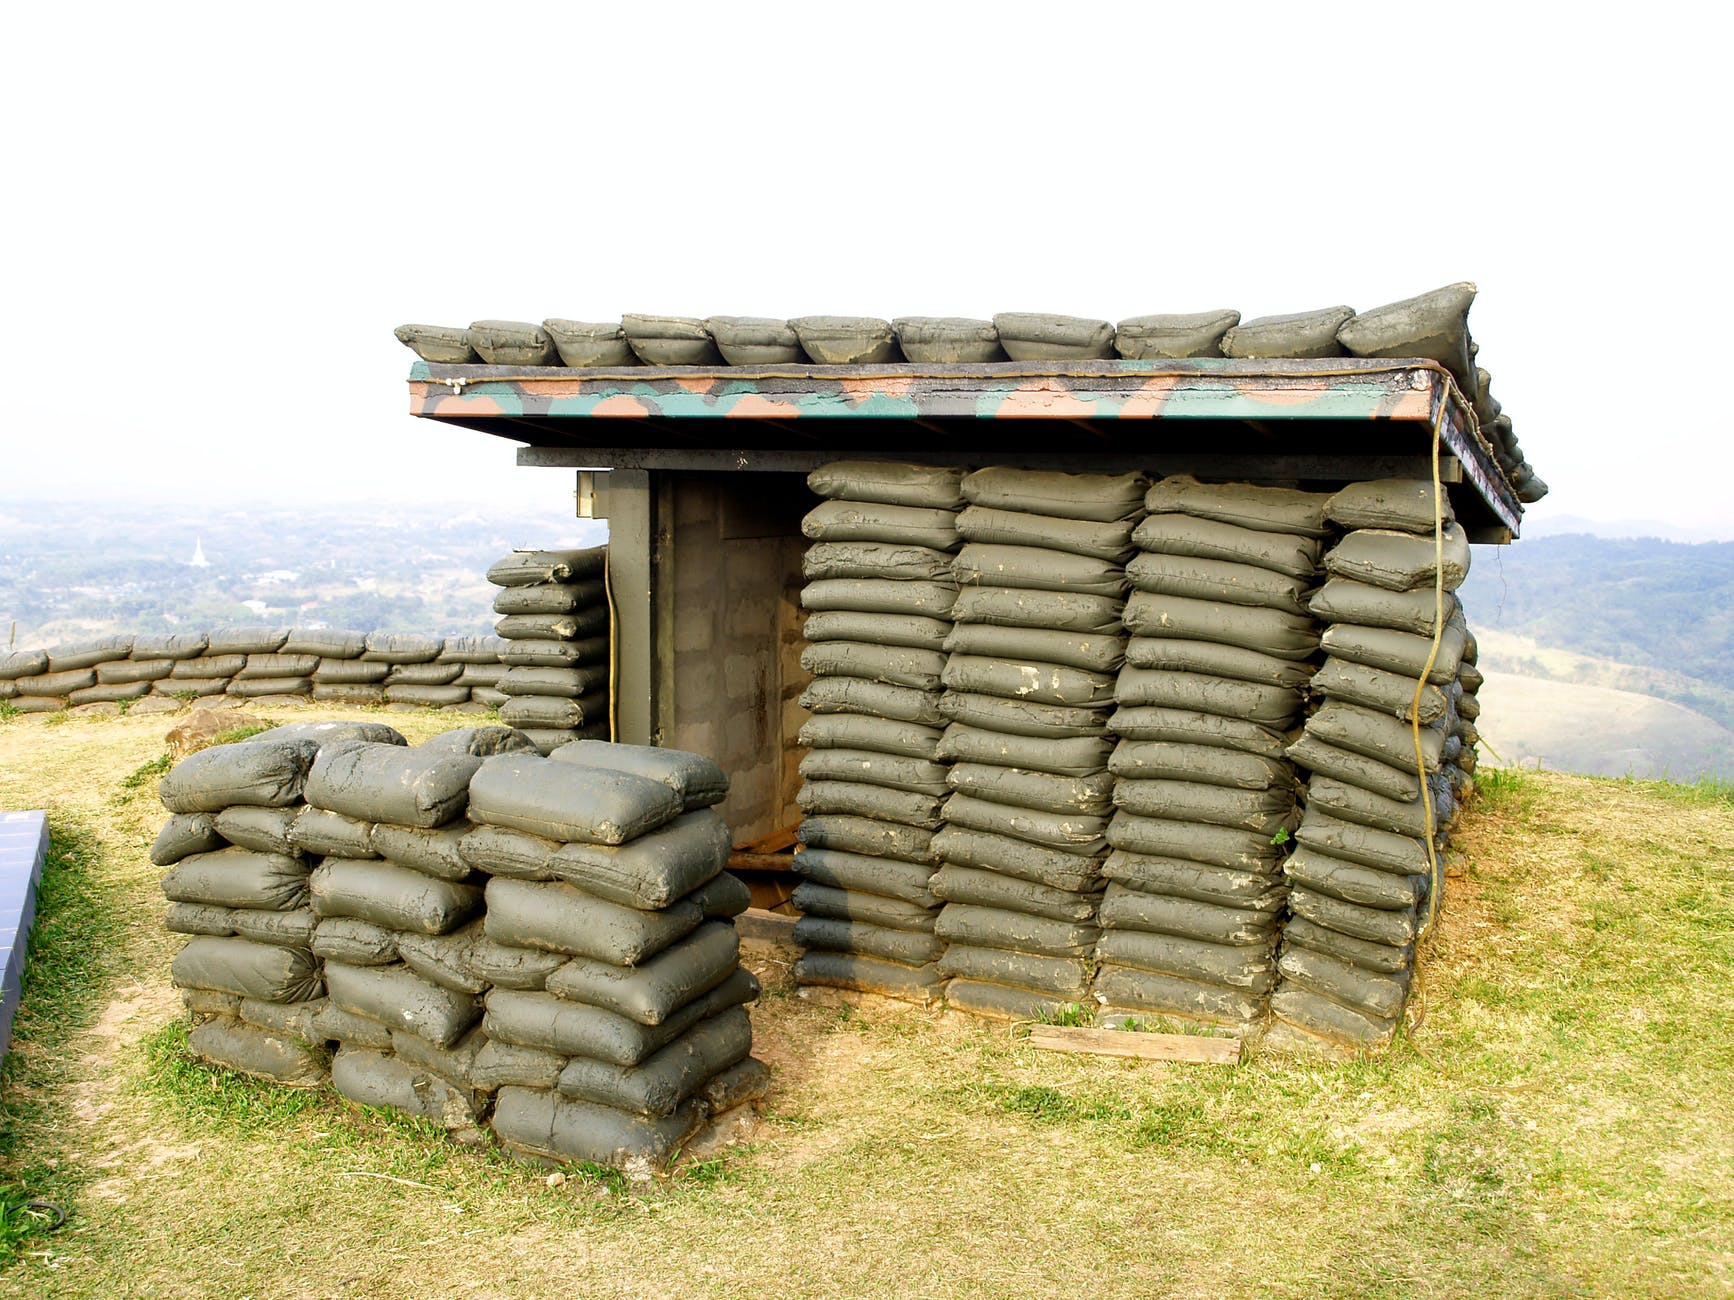 A military looking bunker covered in sacks of concrete and painted dark green